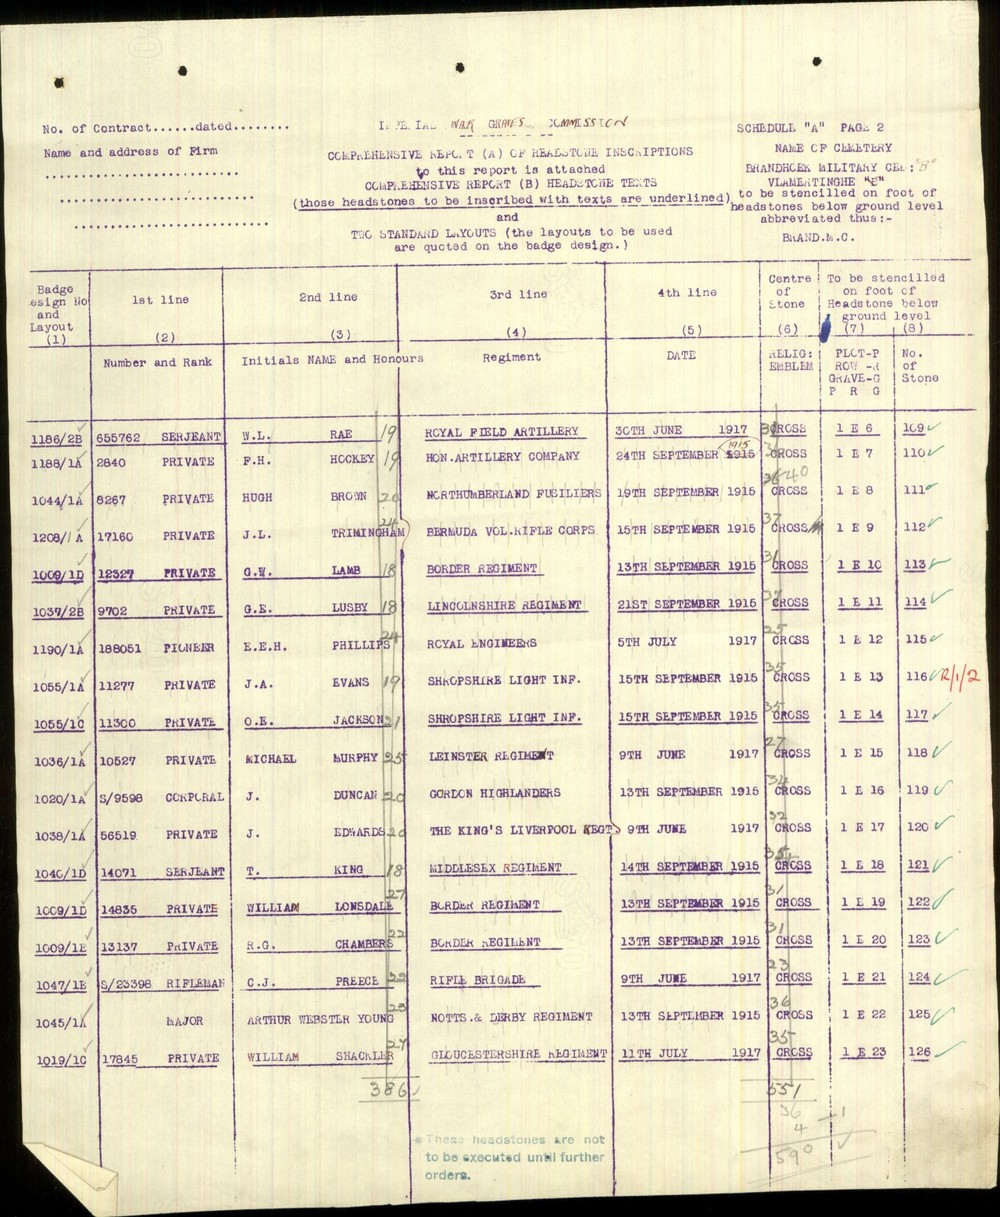 cwgc headstone sched 2 FHH.JPG